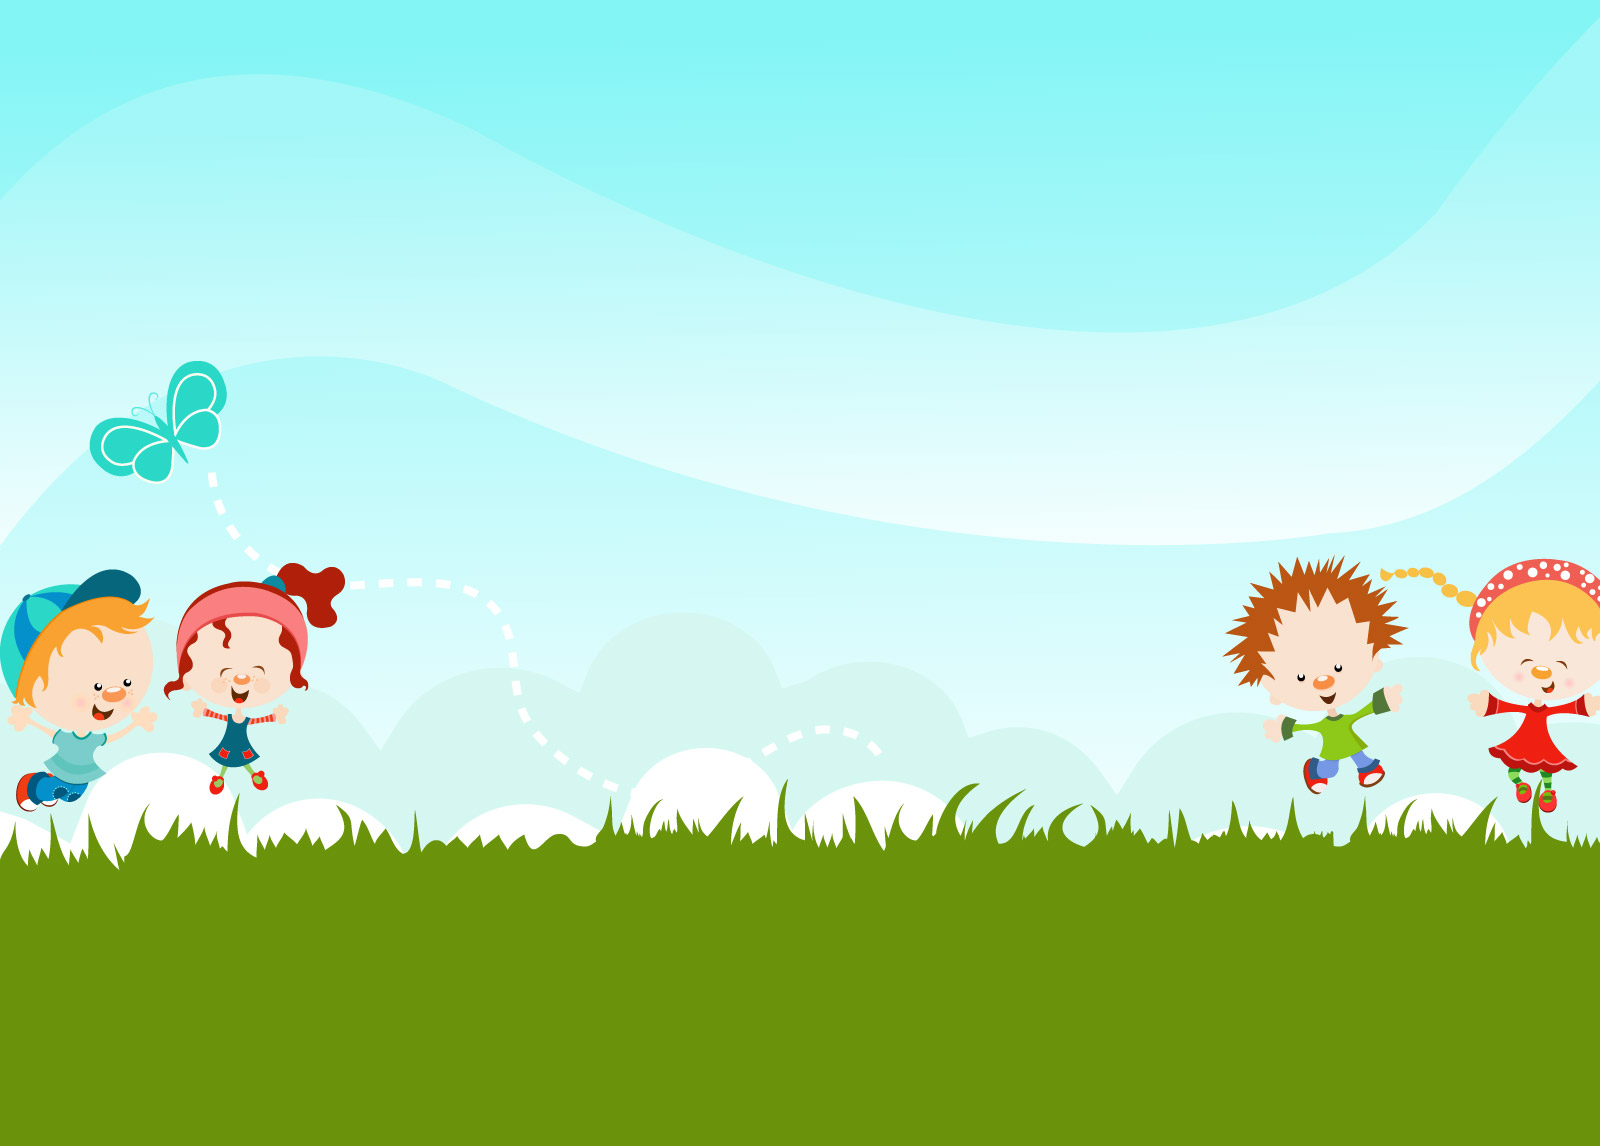 Kids Powerpoint Best Wallpaper Importance Quotes About Nursery Rhymes 1600x1146 Download Hd Wallpaper Wallpapertip